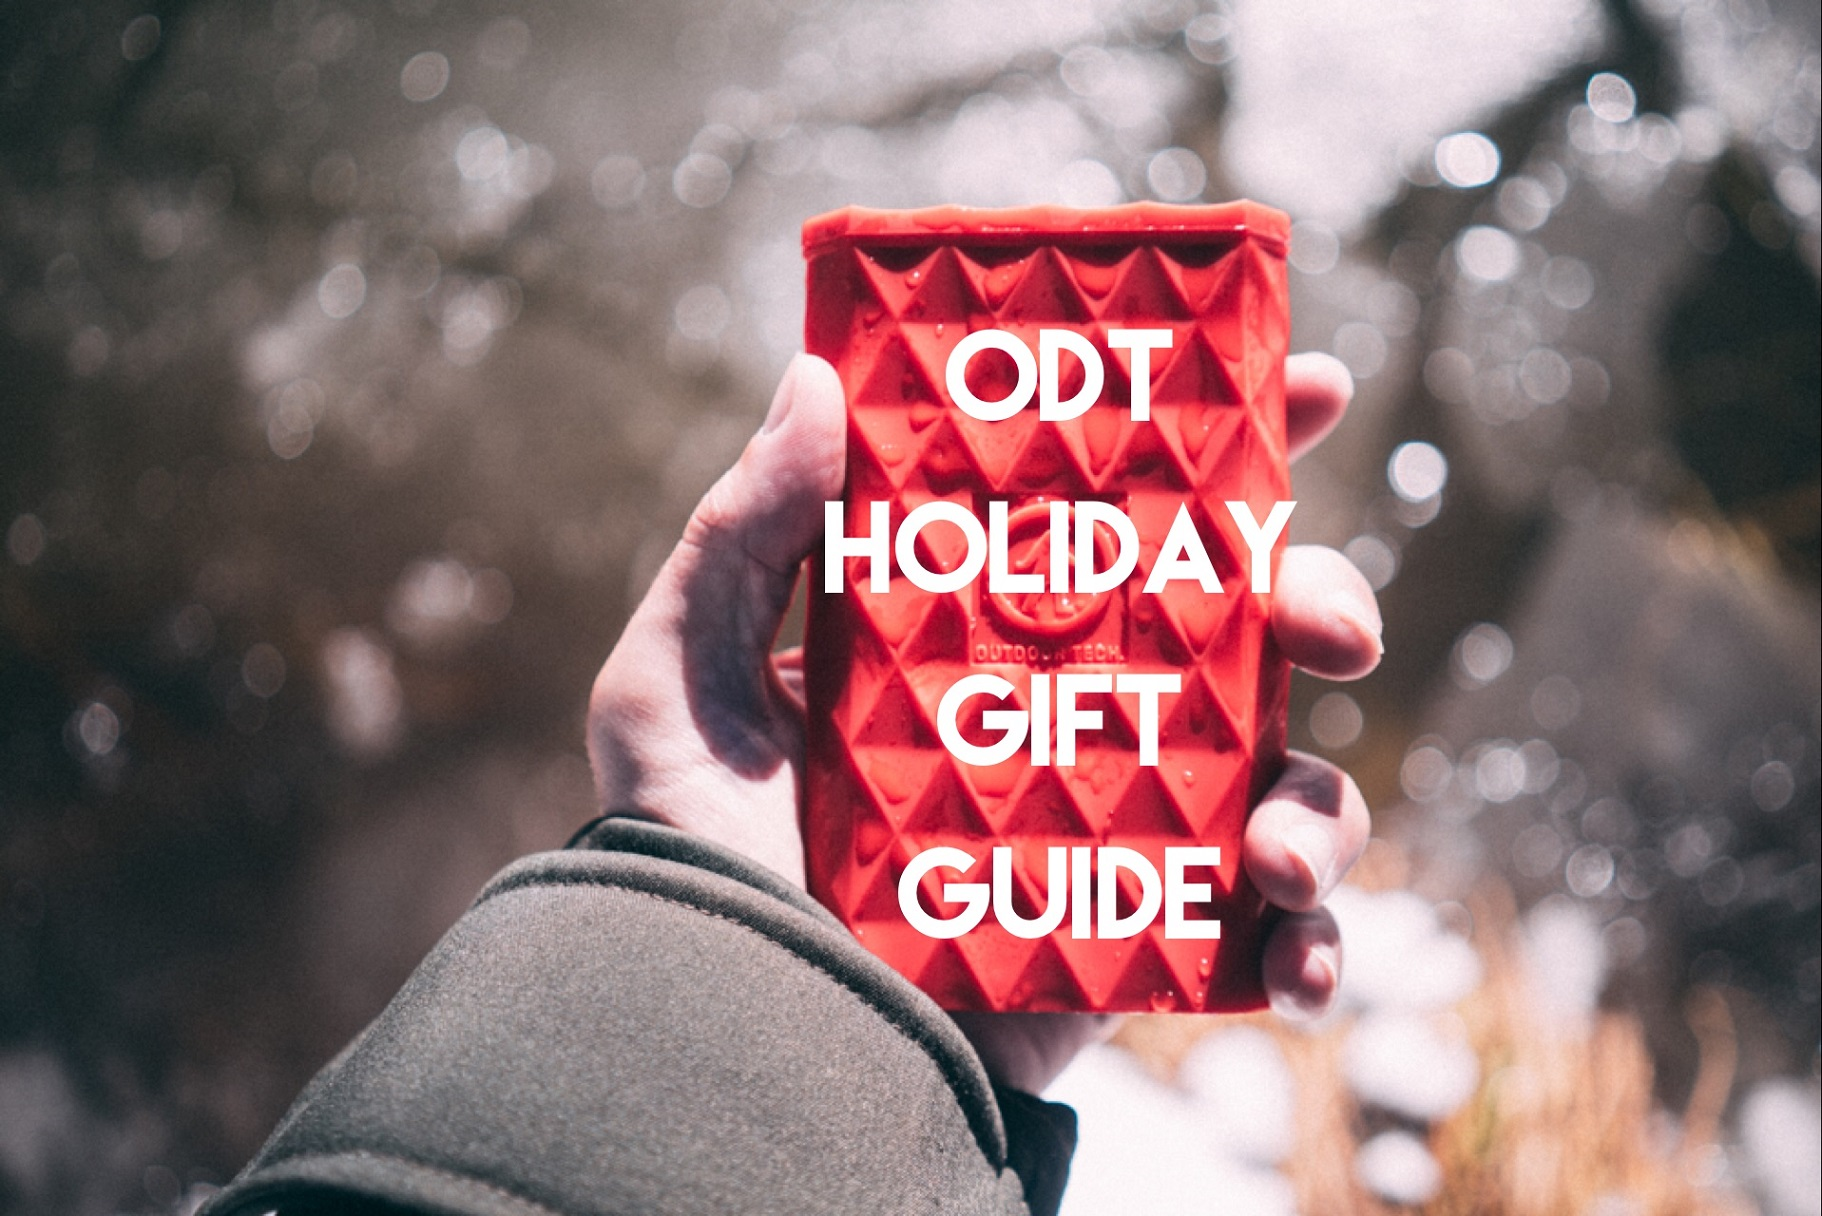 ODT Holiday Gift Guide: Under $100